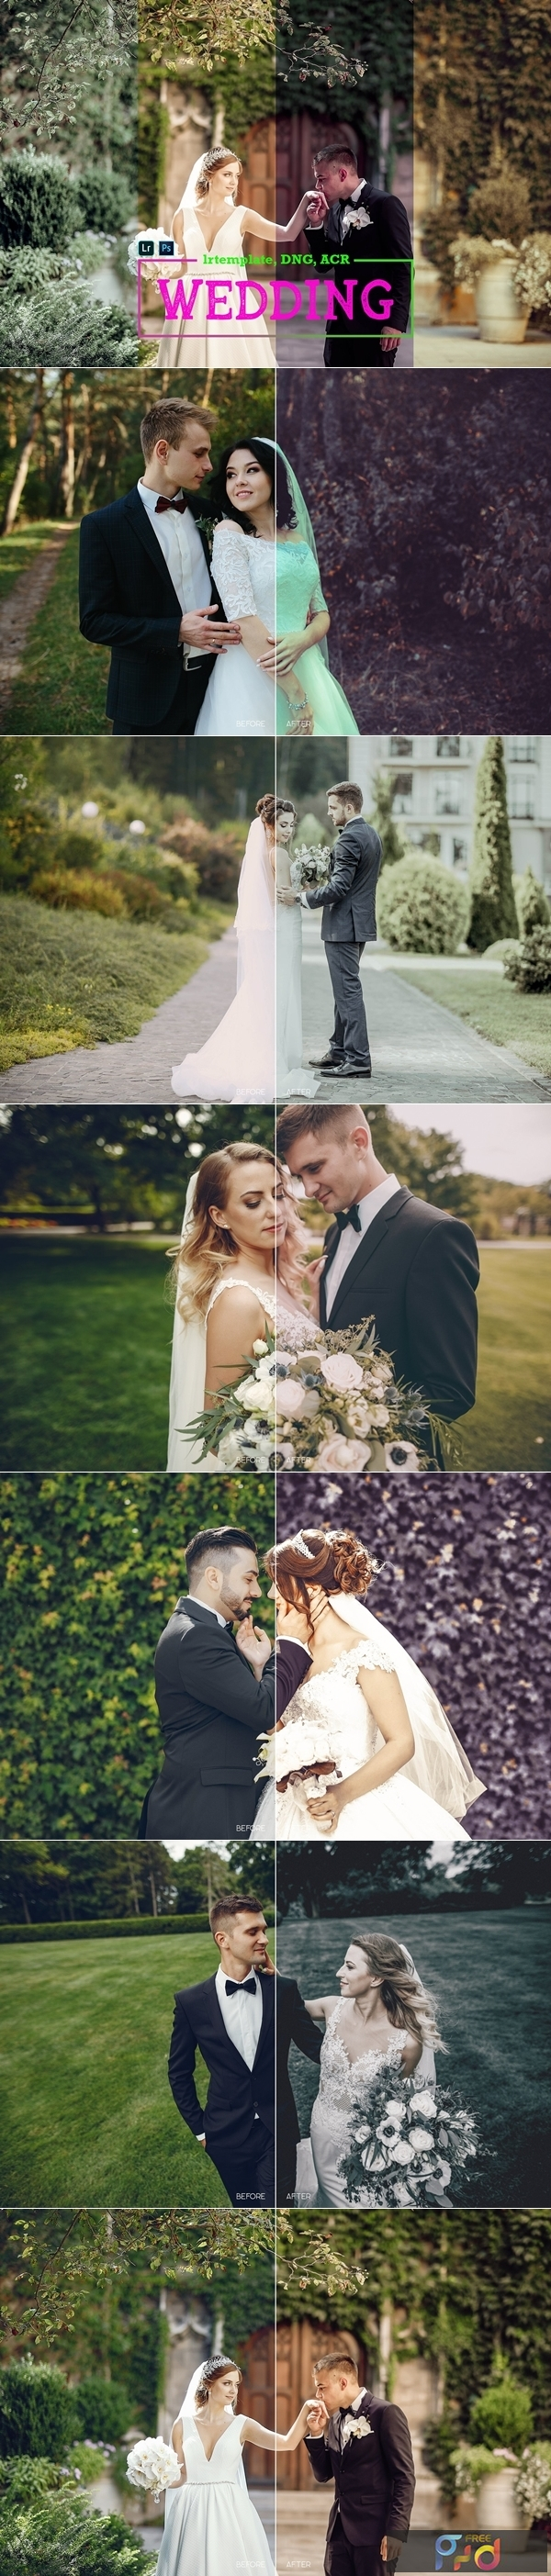 Wedding LR Mobile and ACR Presets 4171693 1